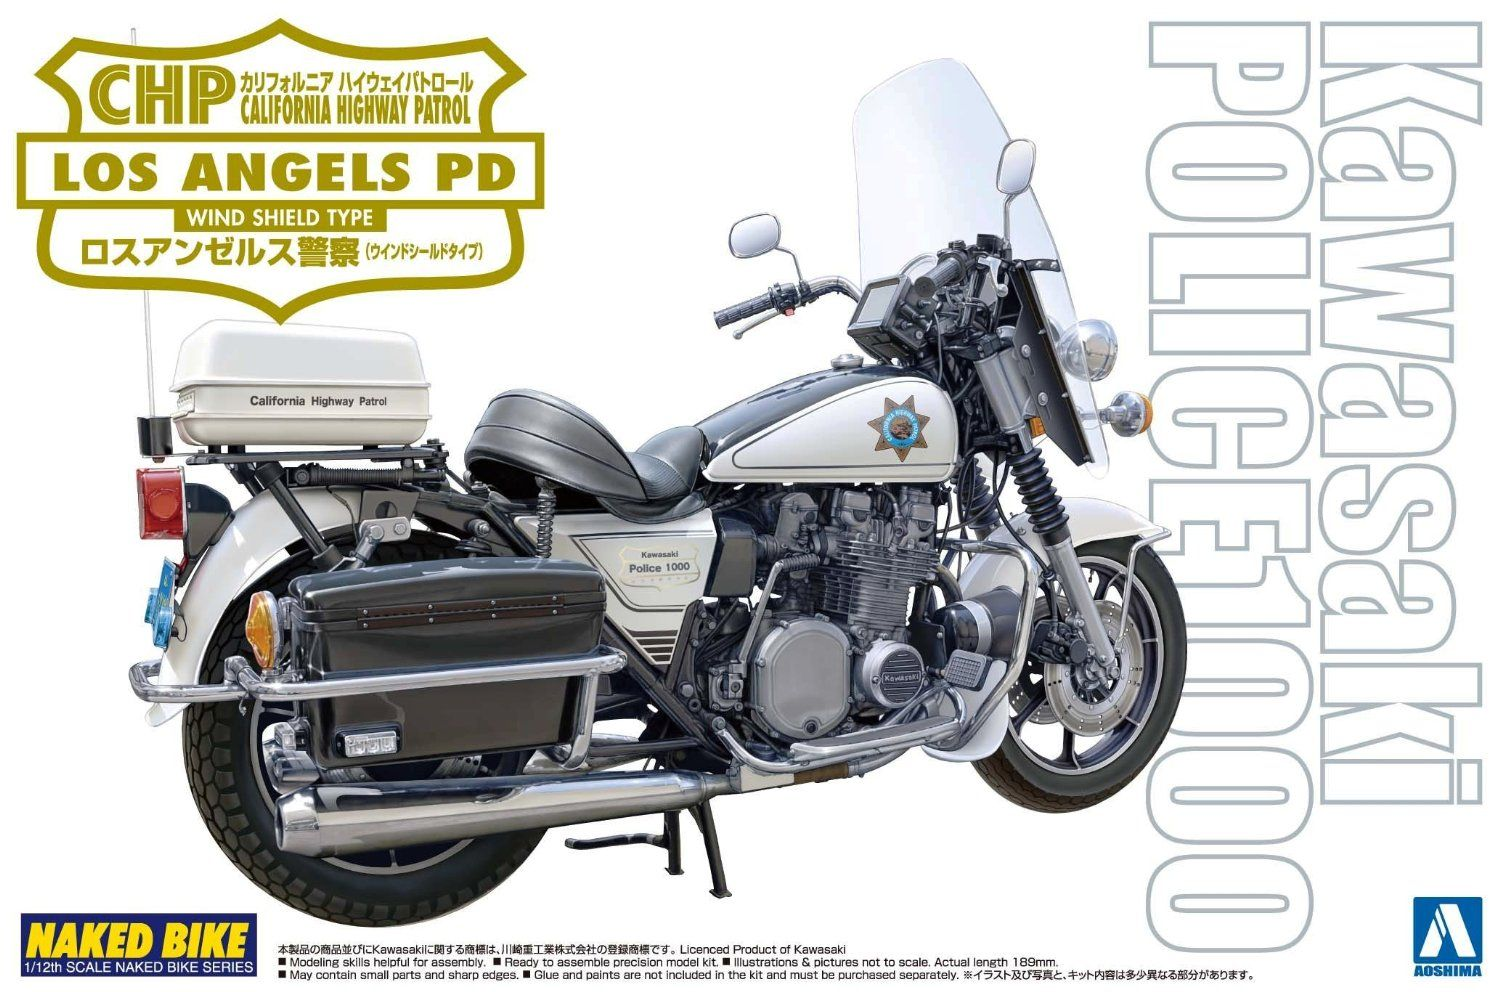 Kawasaki Police 1000 Motorcycle - CHiPs Model. Build it Ponch style !